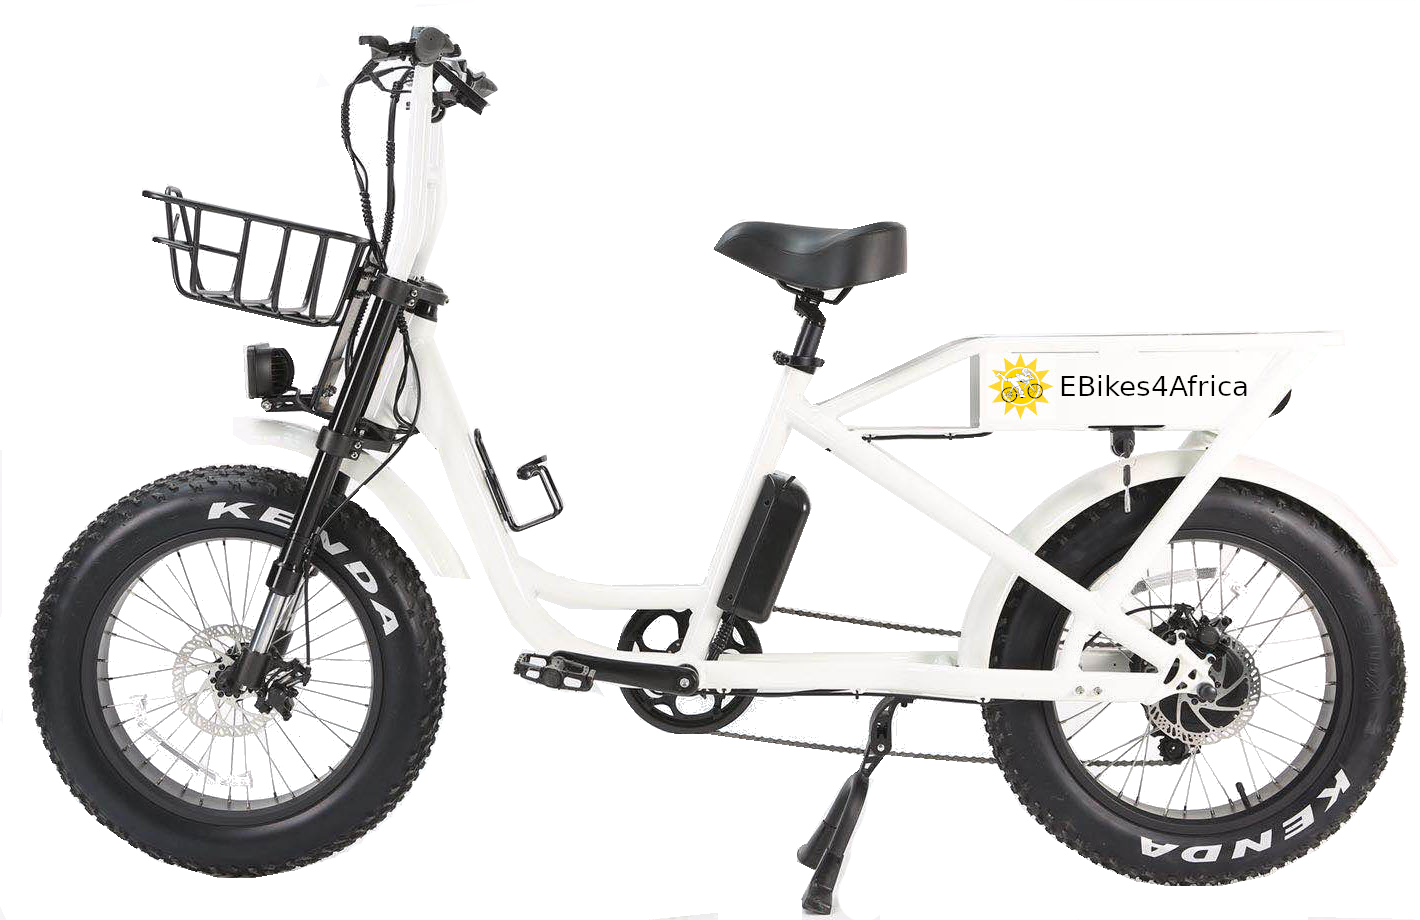 Gallery EBIKES4AFRICA 4